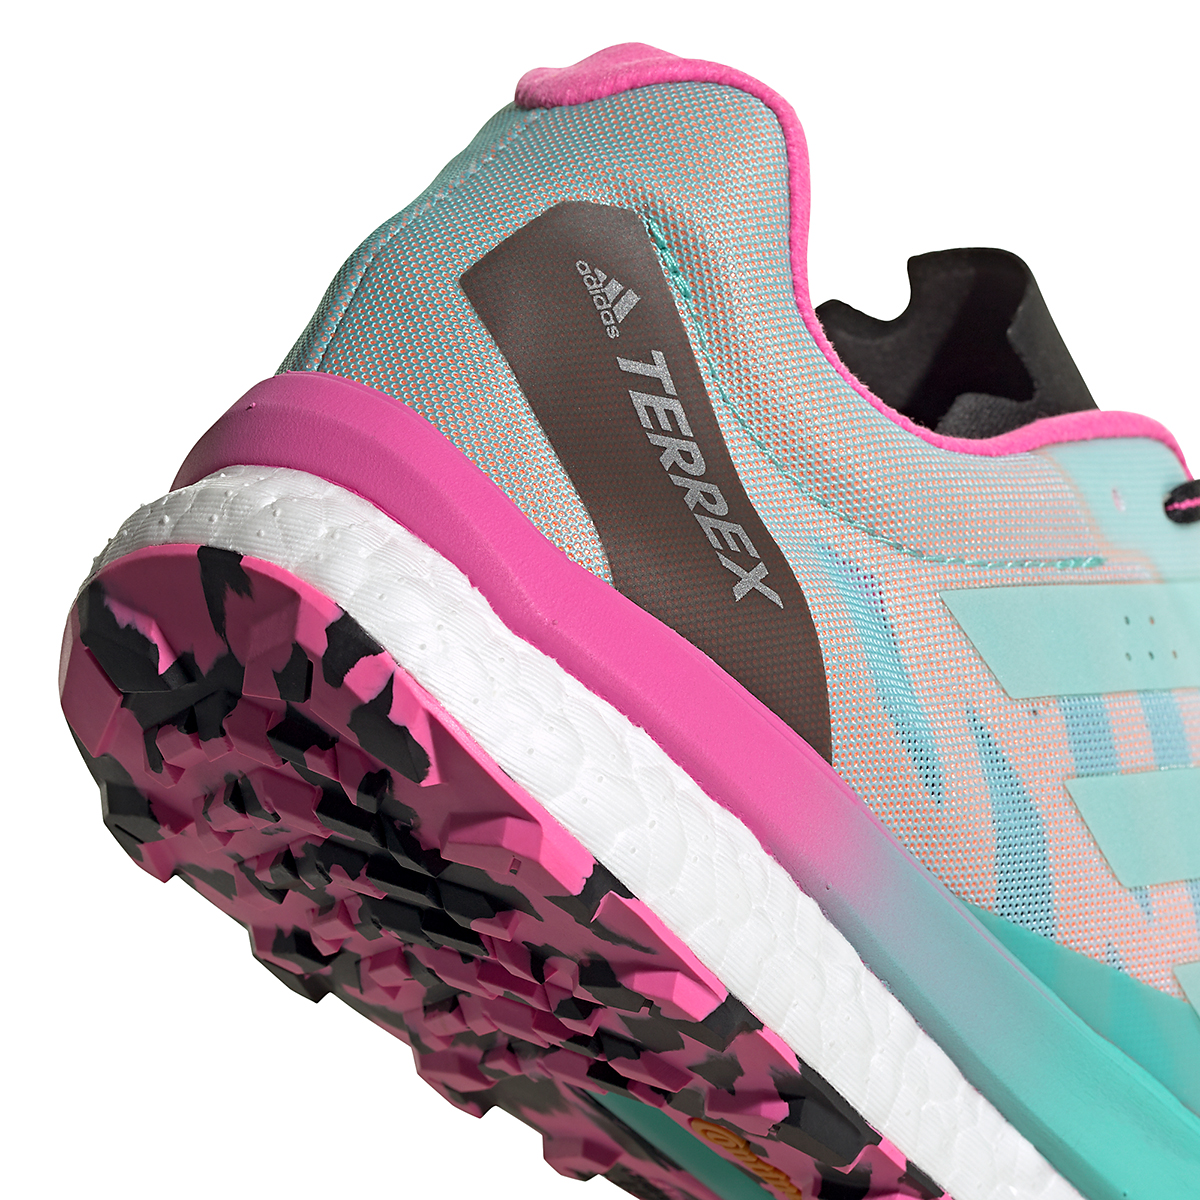 Men's Adidas Terrex Speed Ultra Trail Running Shoe - Color: White/Clear Mint/Screaming Pink - Size: 6.5 - Width: Regular, White/Clear Mint/Screaming Pink, large, image 5